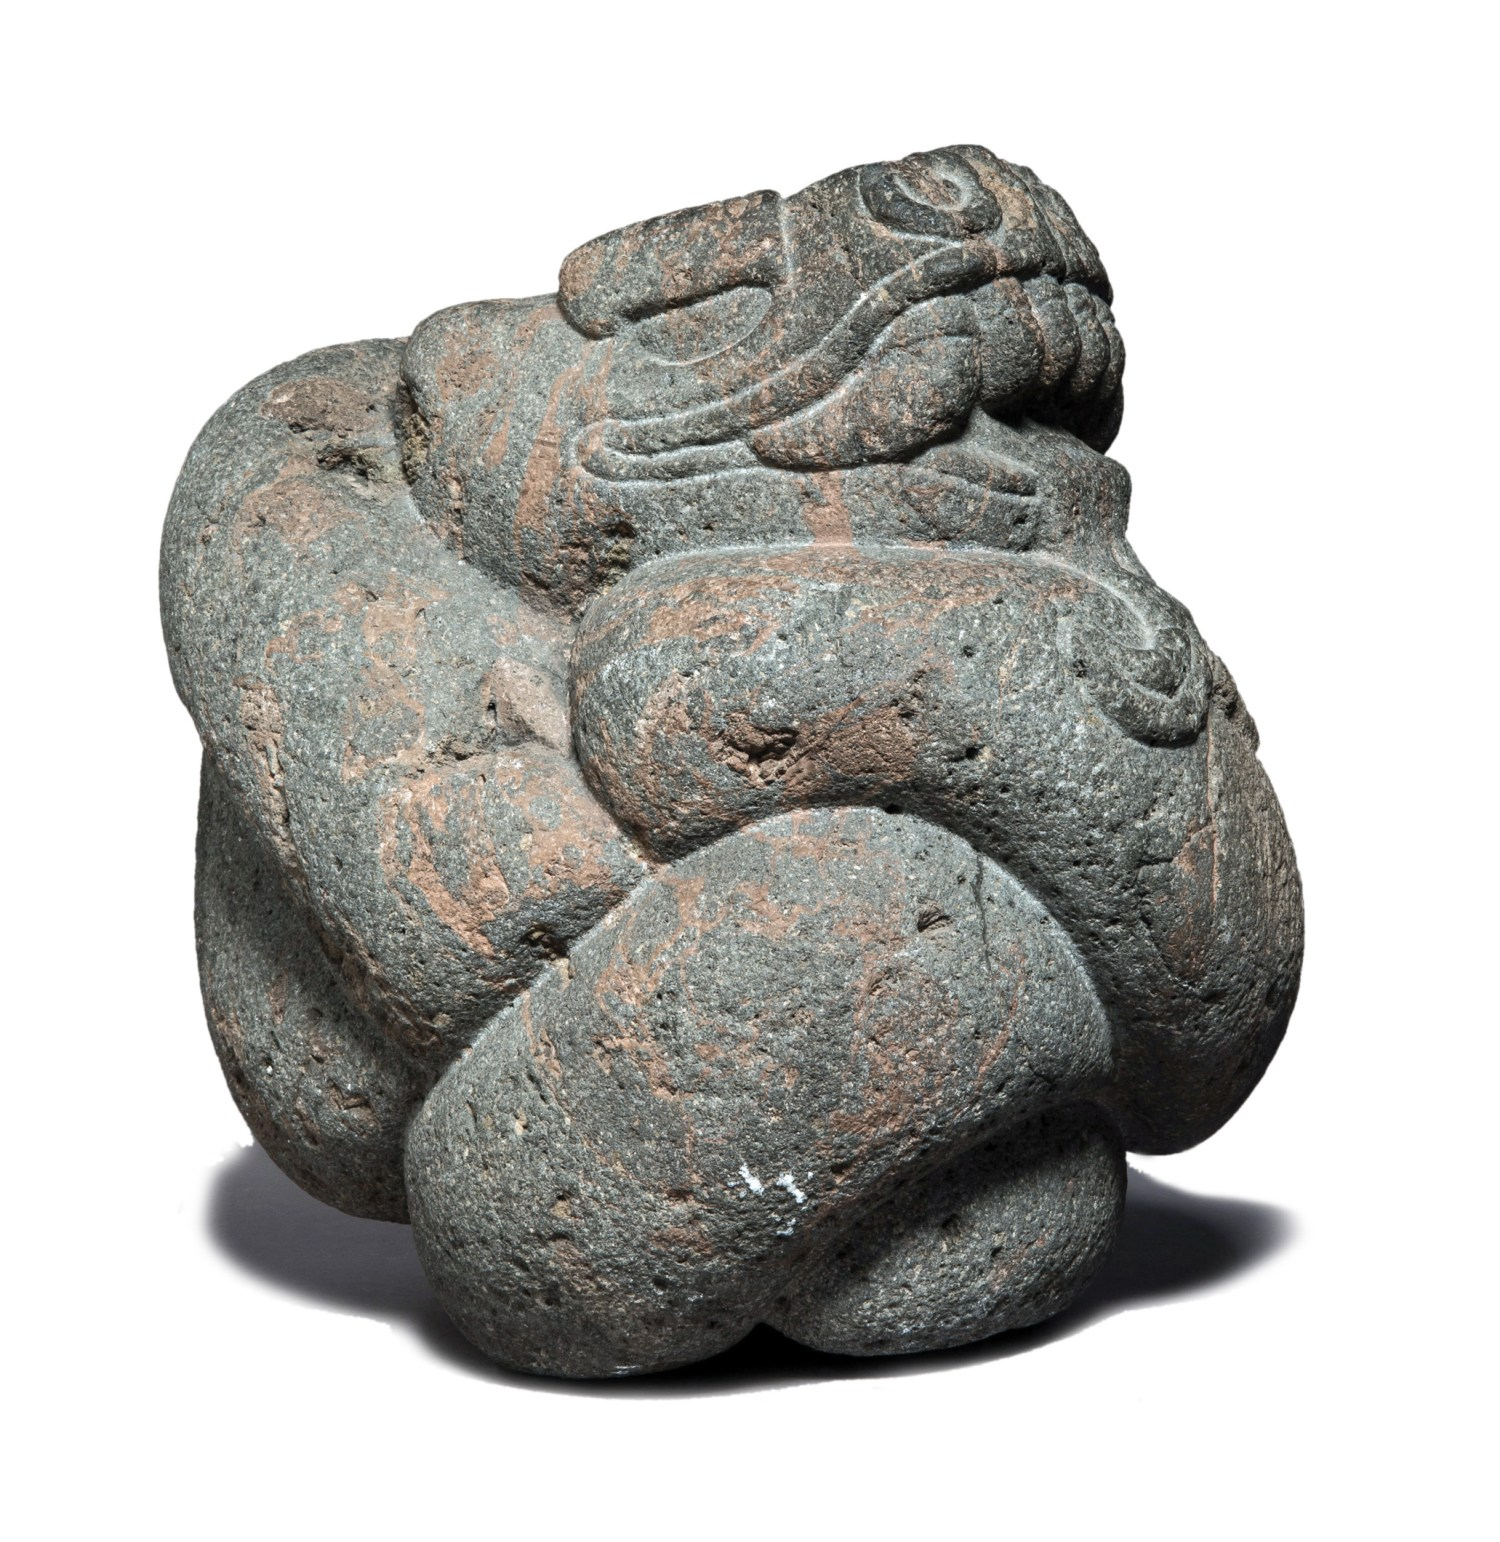 above Stone sculpture in the shape of a snake, c.1350-1521. Size: 34 x 23 x 30cm